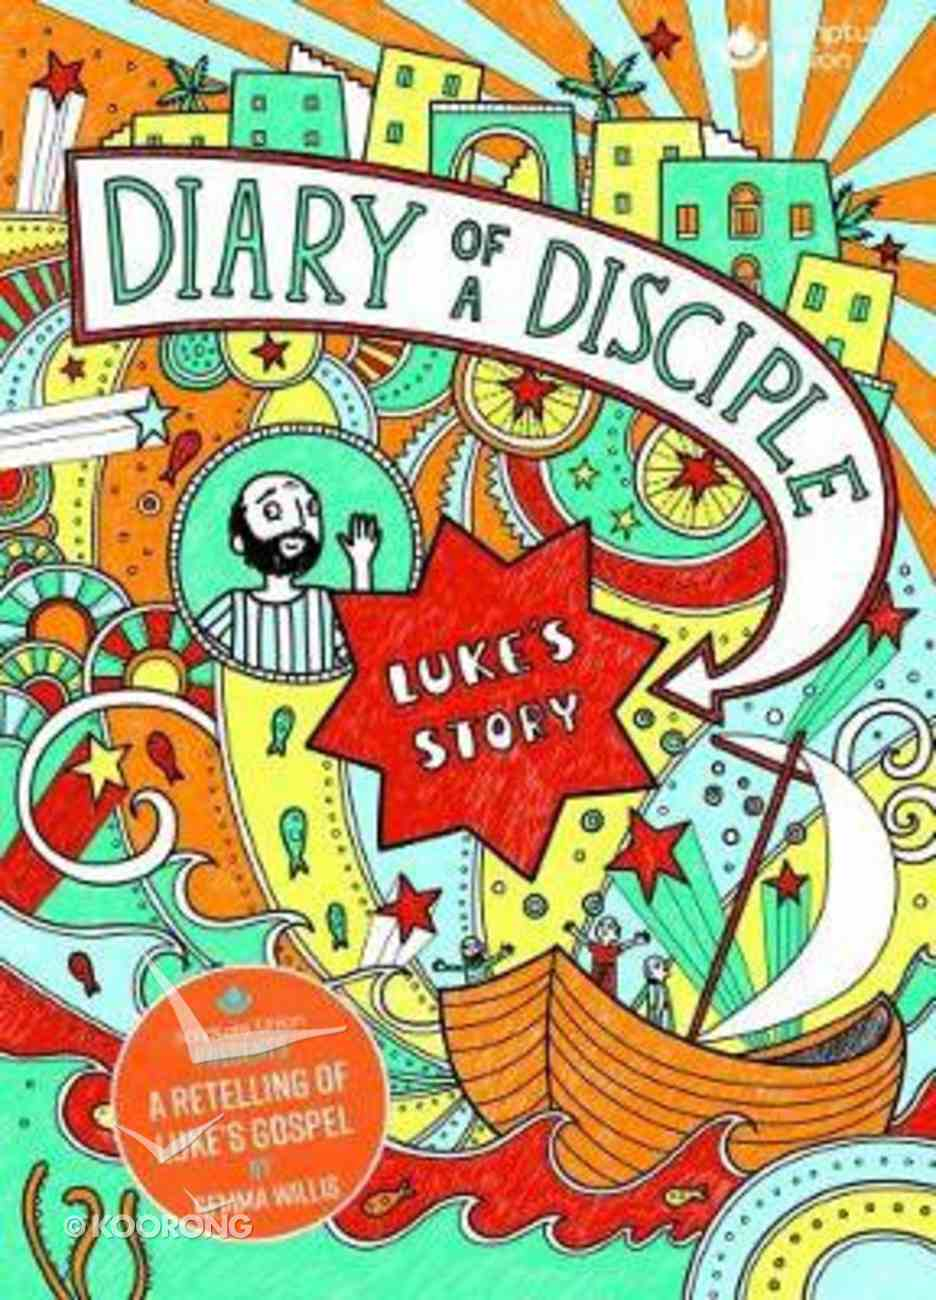 Luke's Story (Diary Of A Disciple Series) Paperback